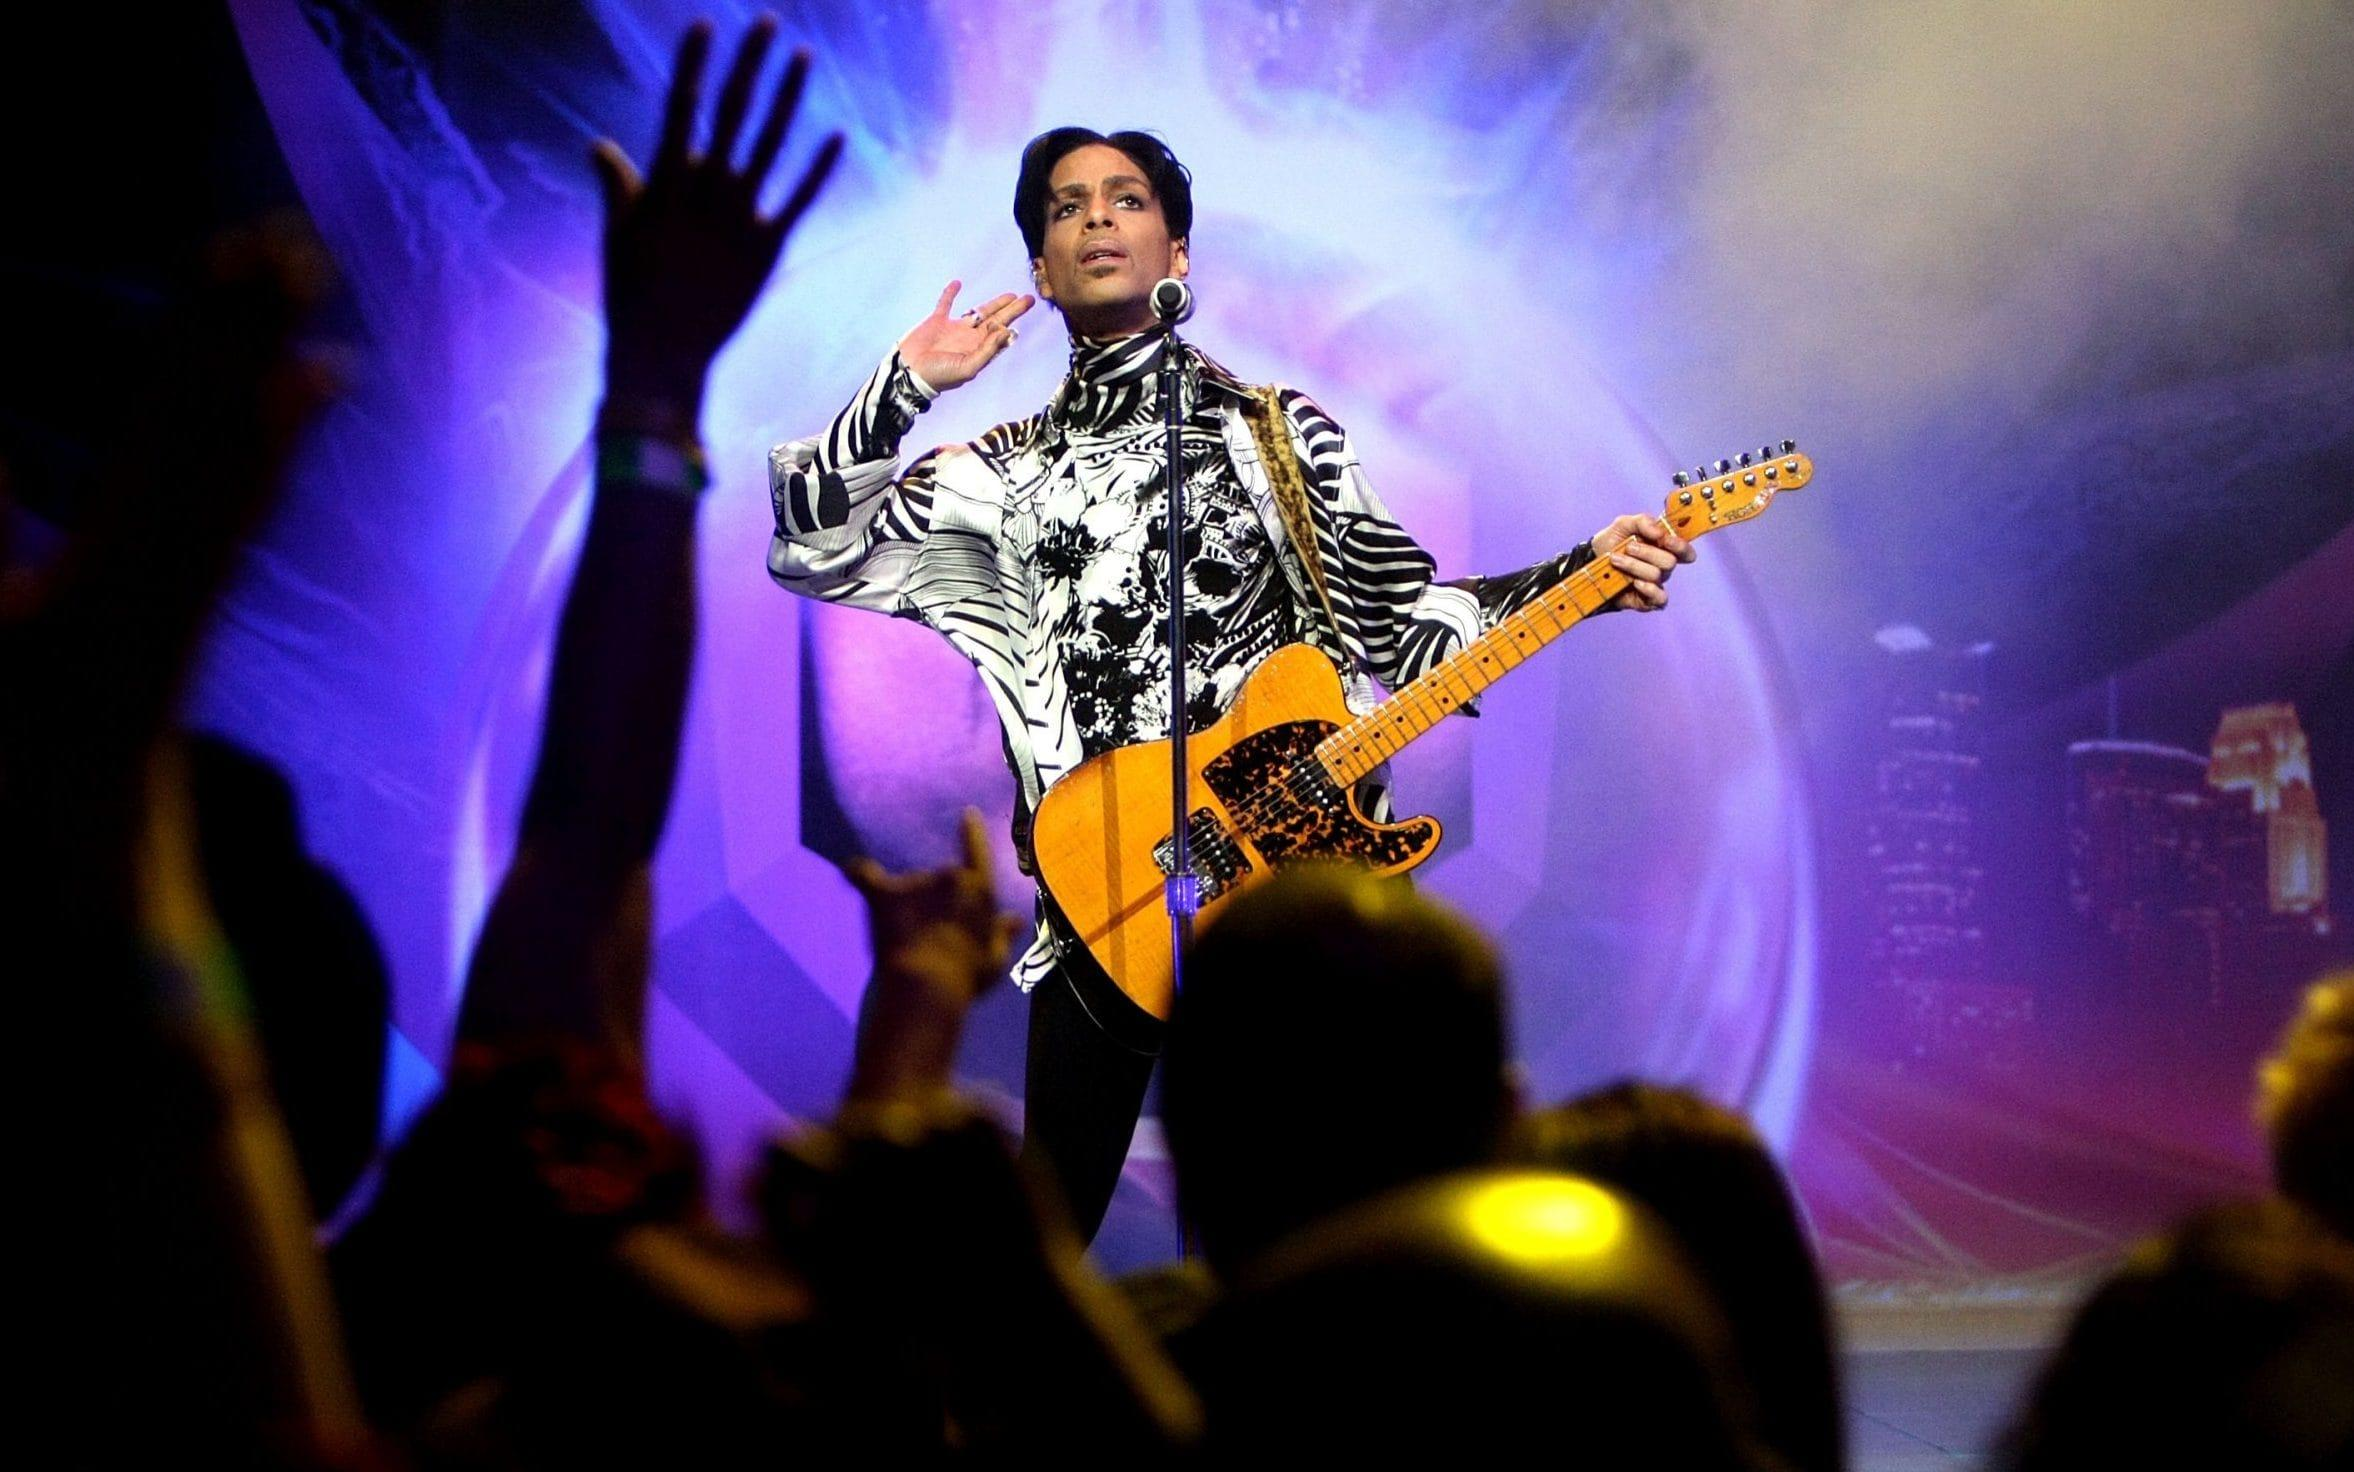 Prince had 'exceedingly high' amount of fentanyl in his body when he died